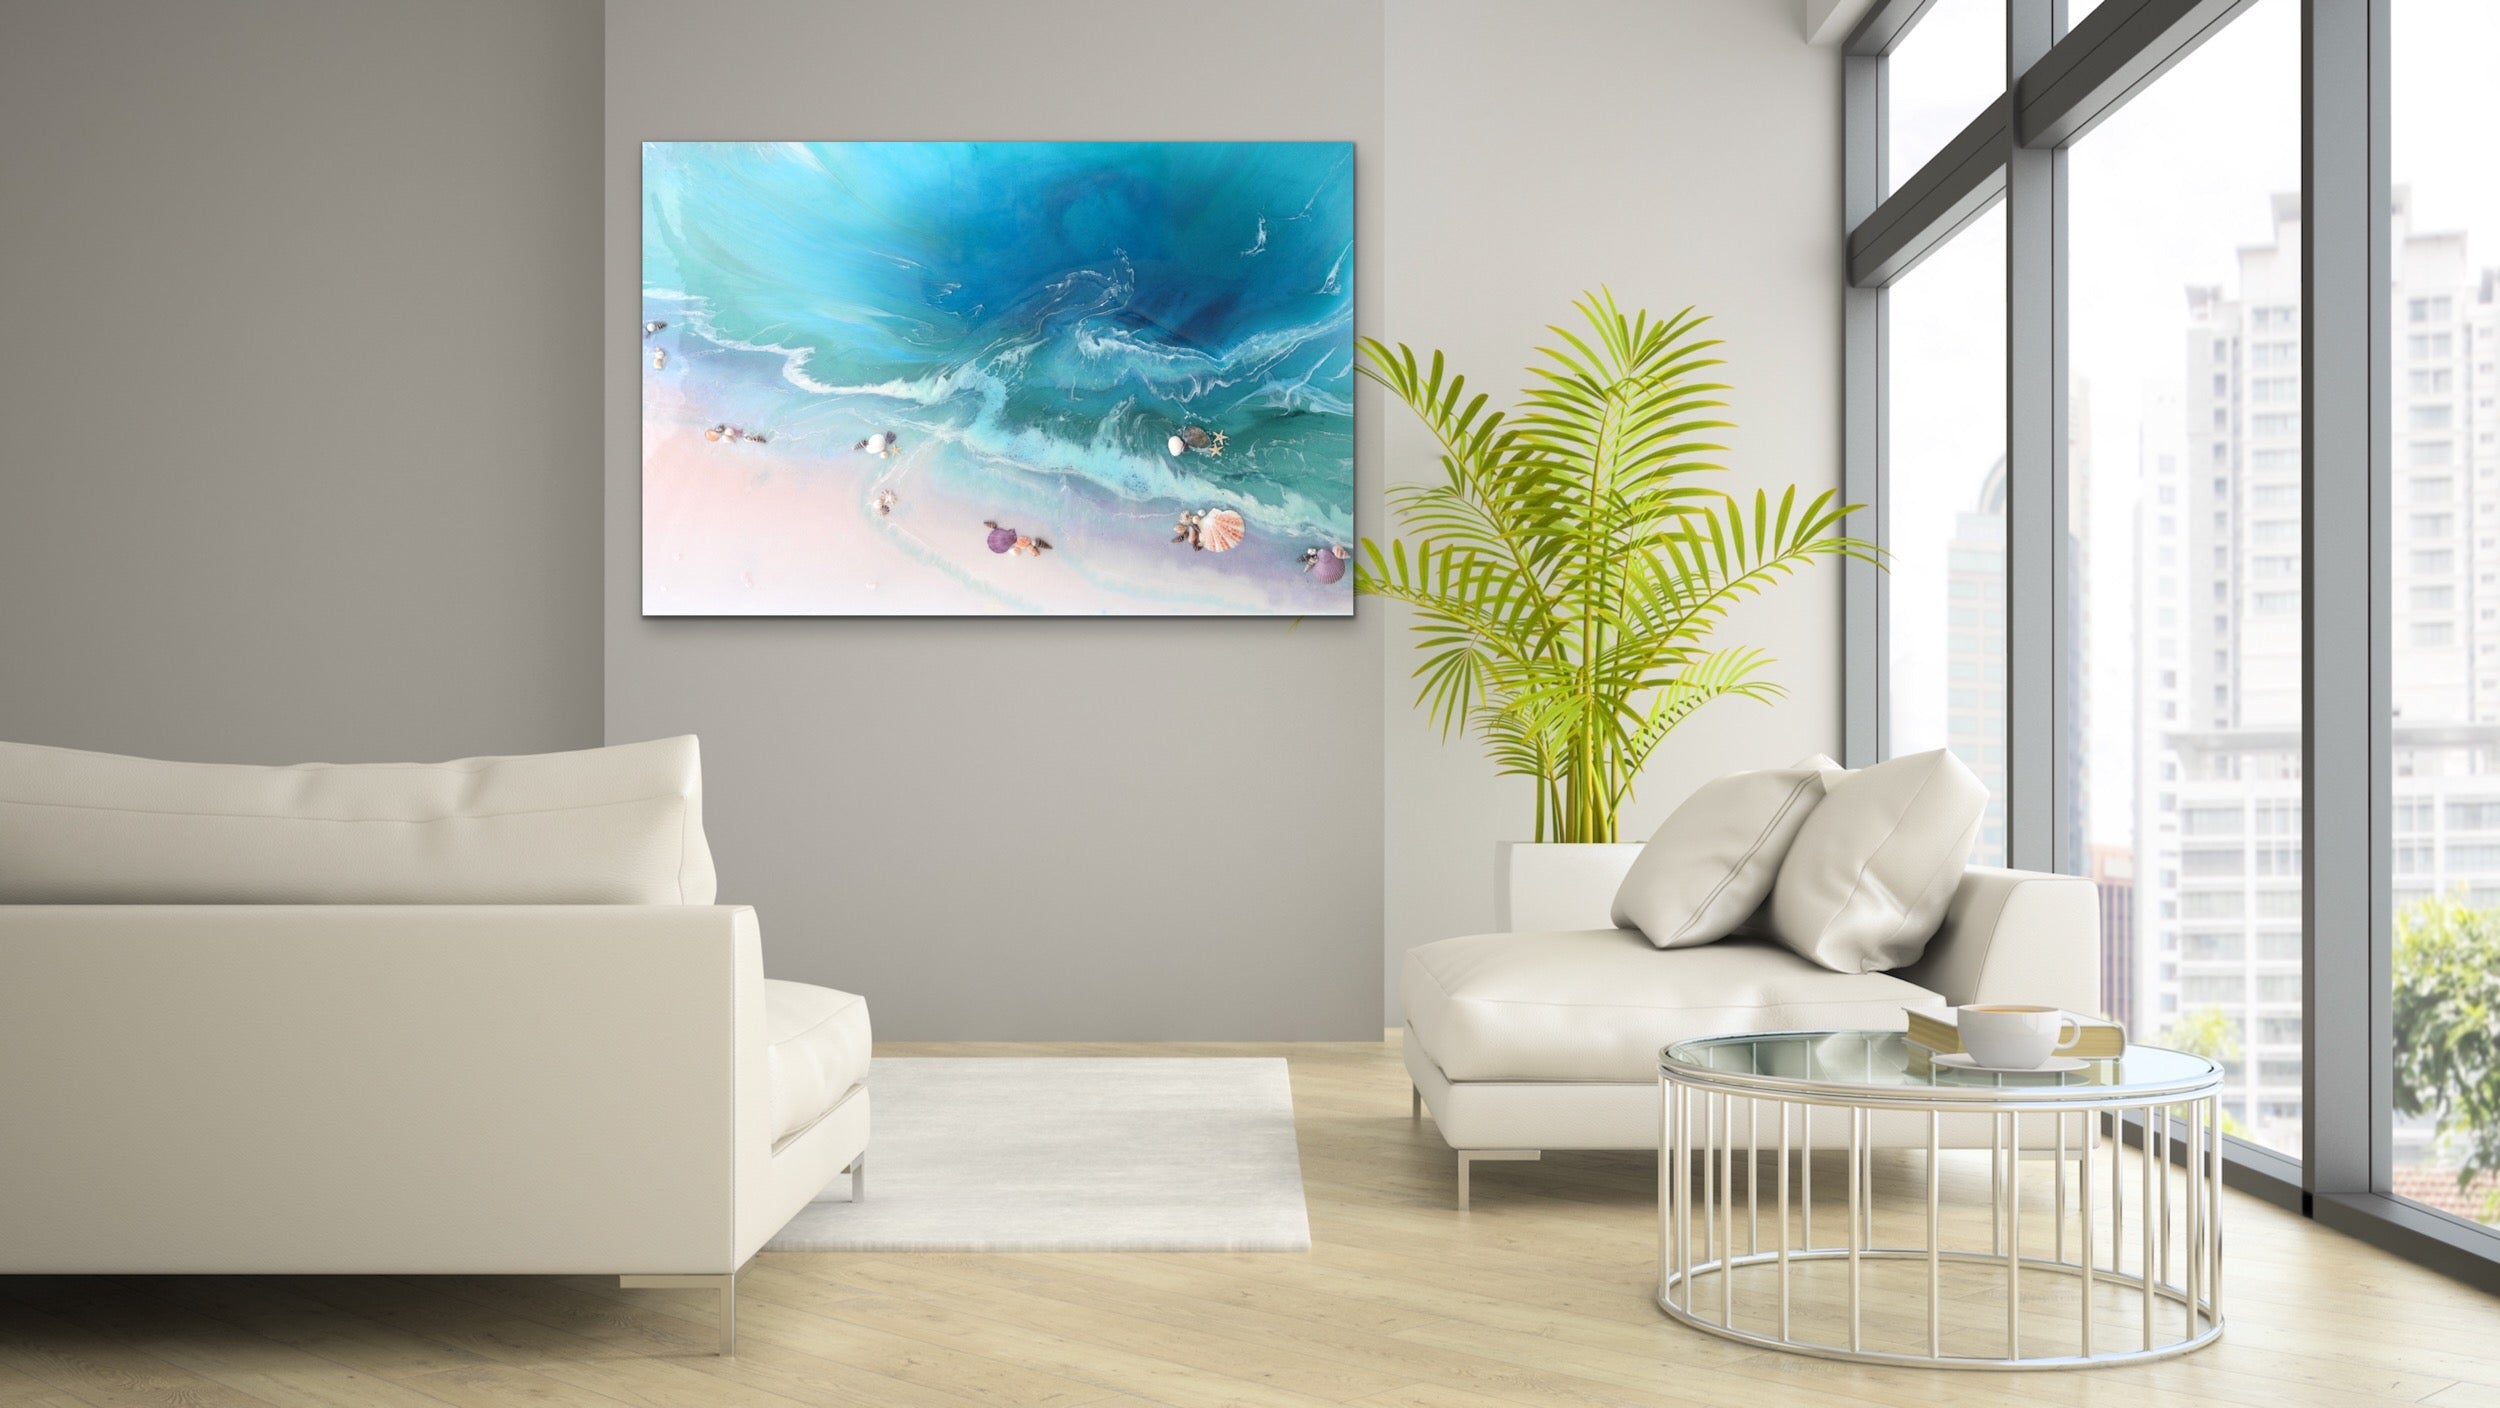 Abstract Seascape. Bright Teal. Bounty Dream. Art Print. Antuanelle 4 Dream Ocean Beach Wall. Limited Edition Print